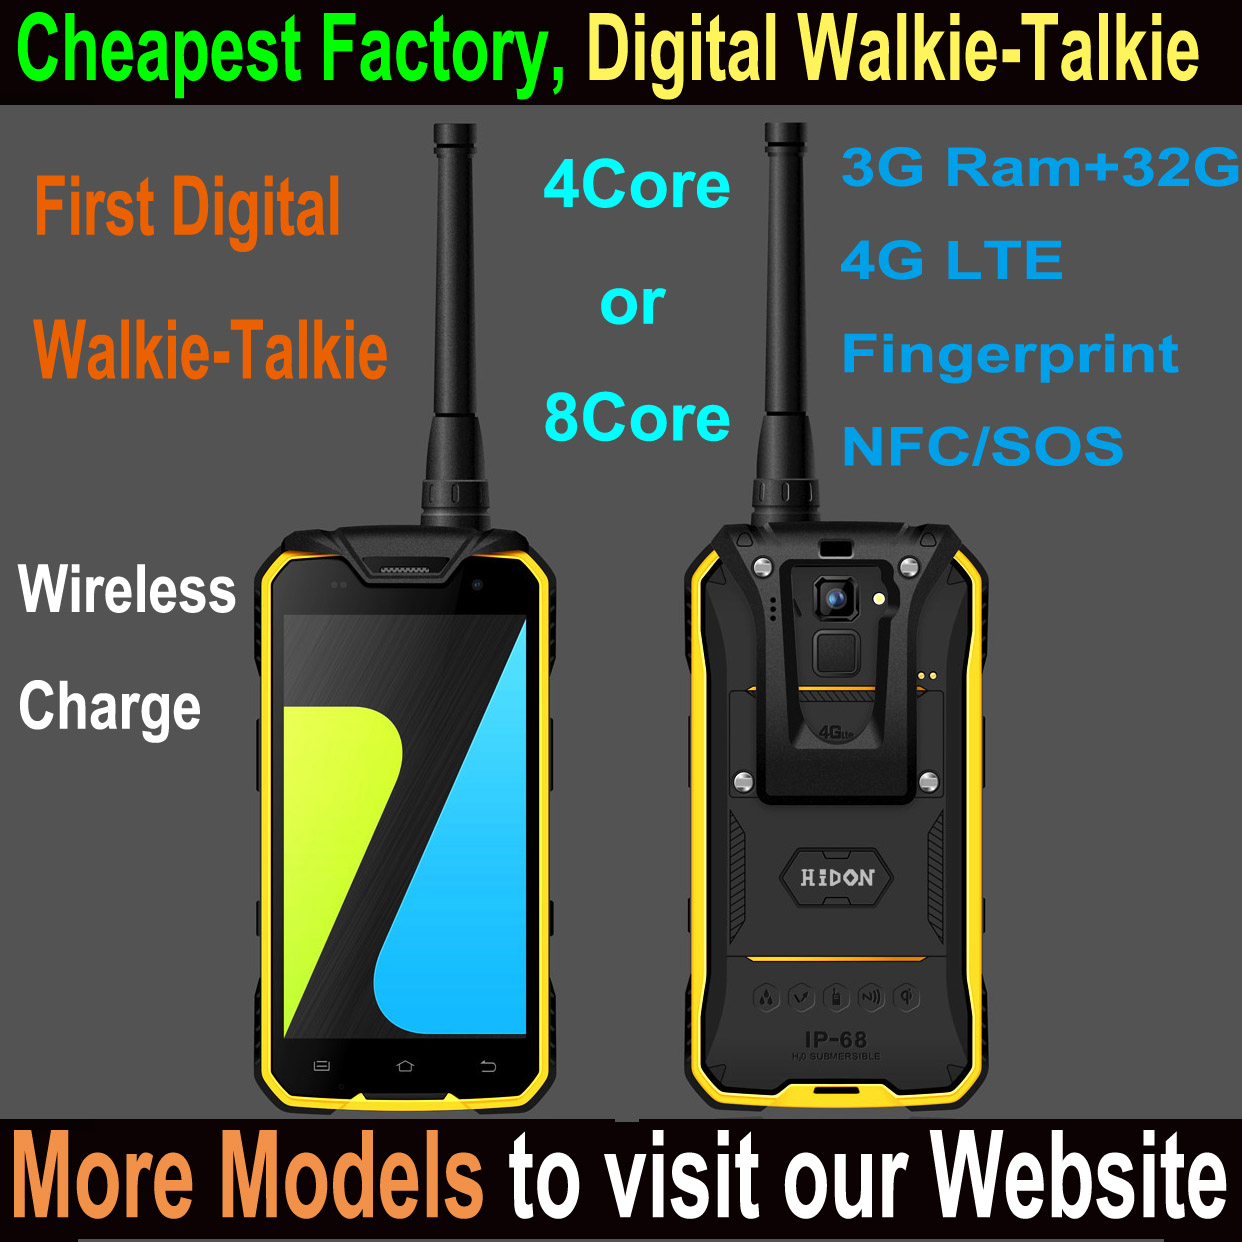 Highton Octa-core 4.7 inch digital intercom phone with fingerprint scanner 3+32G digital walkie-talkie waterproof Smartphone